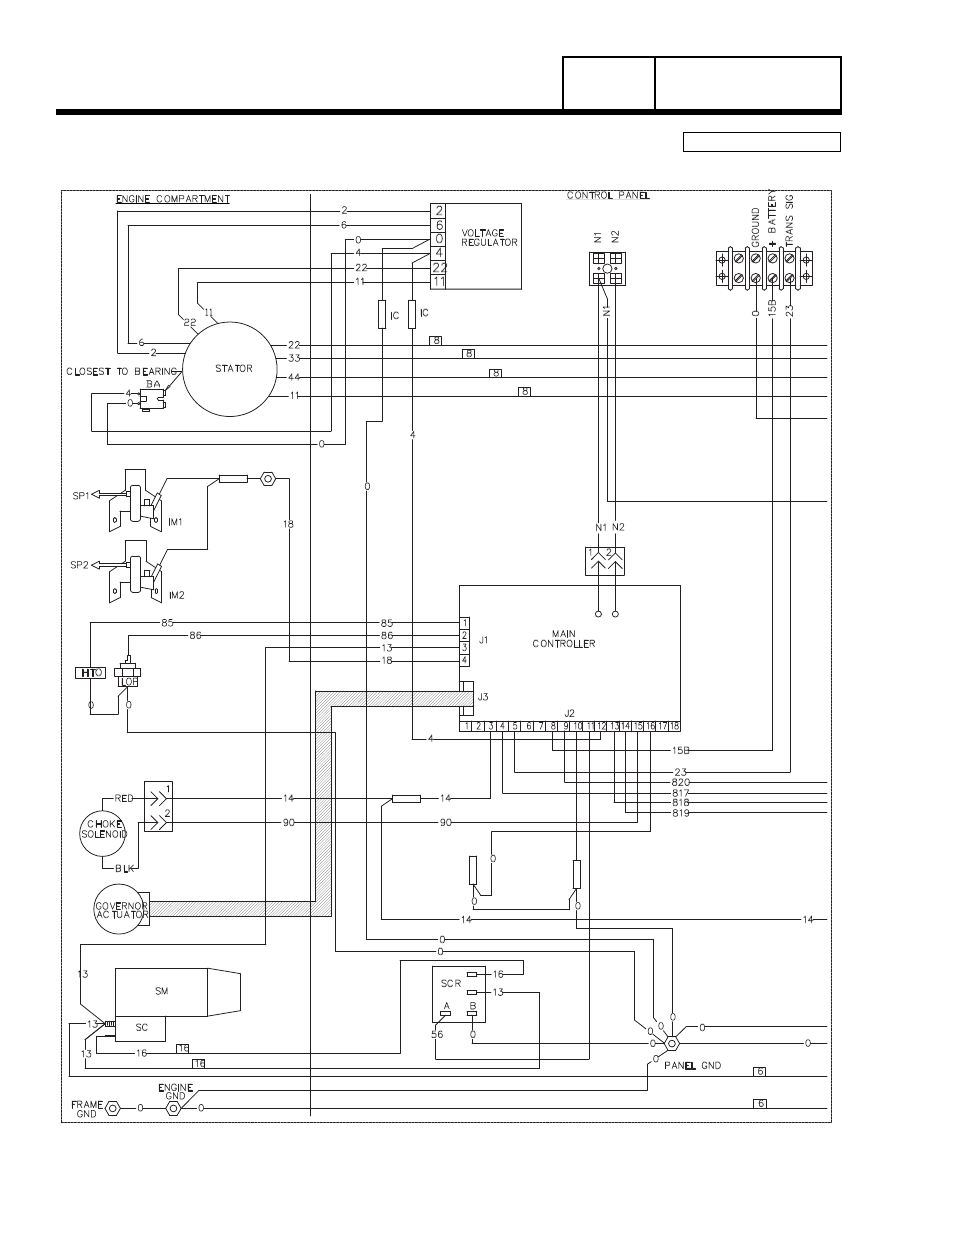 8 Kw Generac Wiring Diagram - 15.7.danishfashion-mode.de • Generac Series Wiring Diagrams on ingersoll rand wiring diagram, taylor wiring diagram, graco wiring diagram, detroit wiring diagram, devilbiss wiring diagram, karcher wiring diagram, hobart wiring diagram, simplicity wiring diagram, general wiring diagram, dremel wiring diagram, bolens wiring diagram, columbia wiring diagram, bush hog wiring diagram, sears wiring diagram, little giant wiring diagram, scotts wiring diagram, mi-t-m wiring diagram, automatic transfer switch wiring diagram, northstar wiring diagram, atlas wiring diagram,